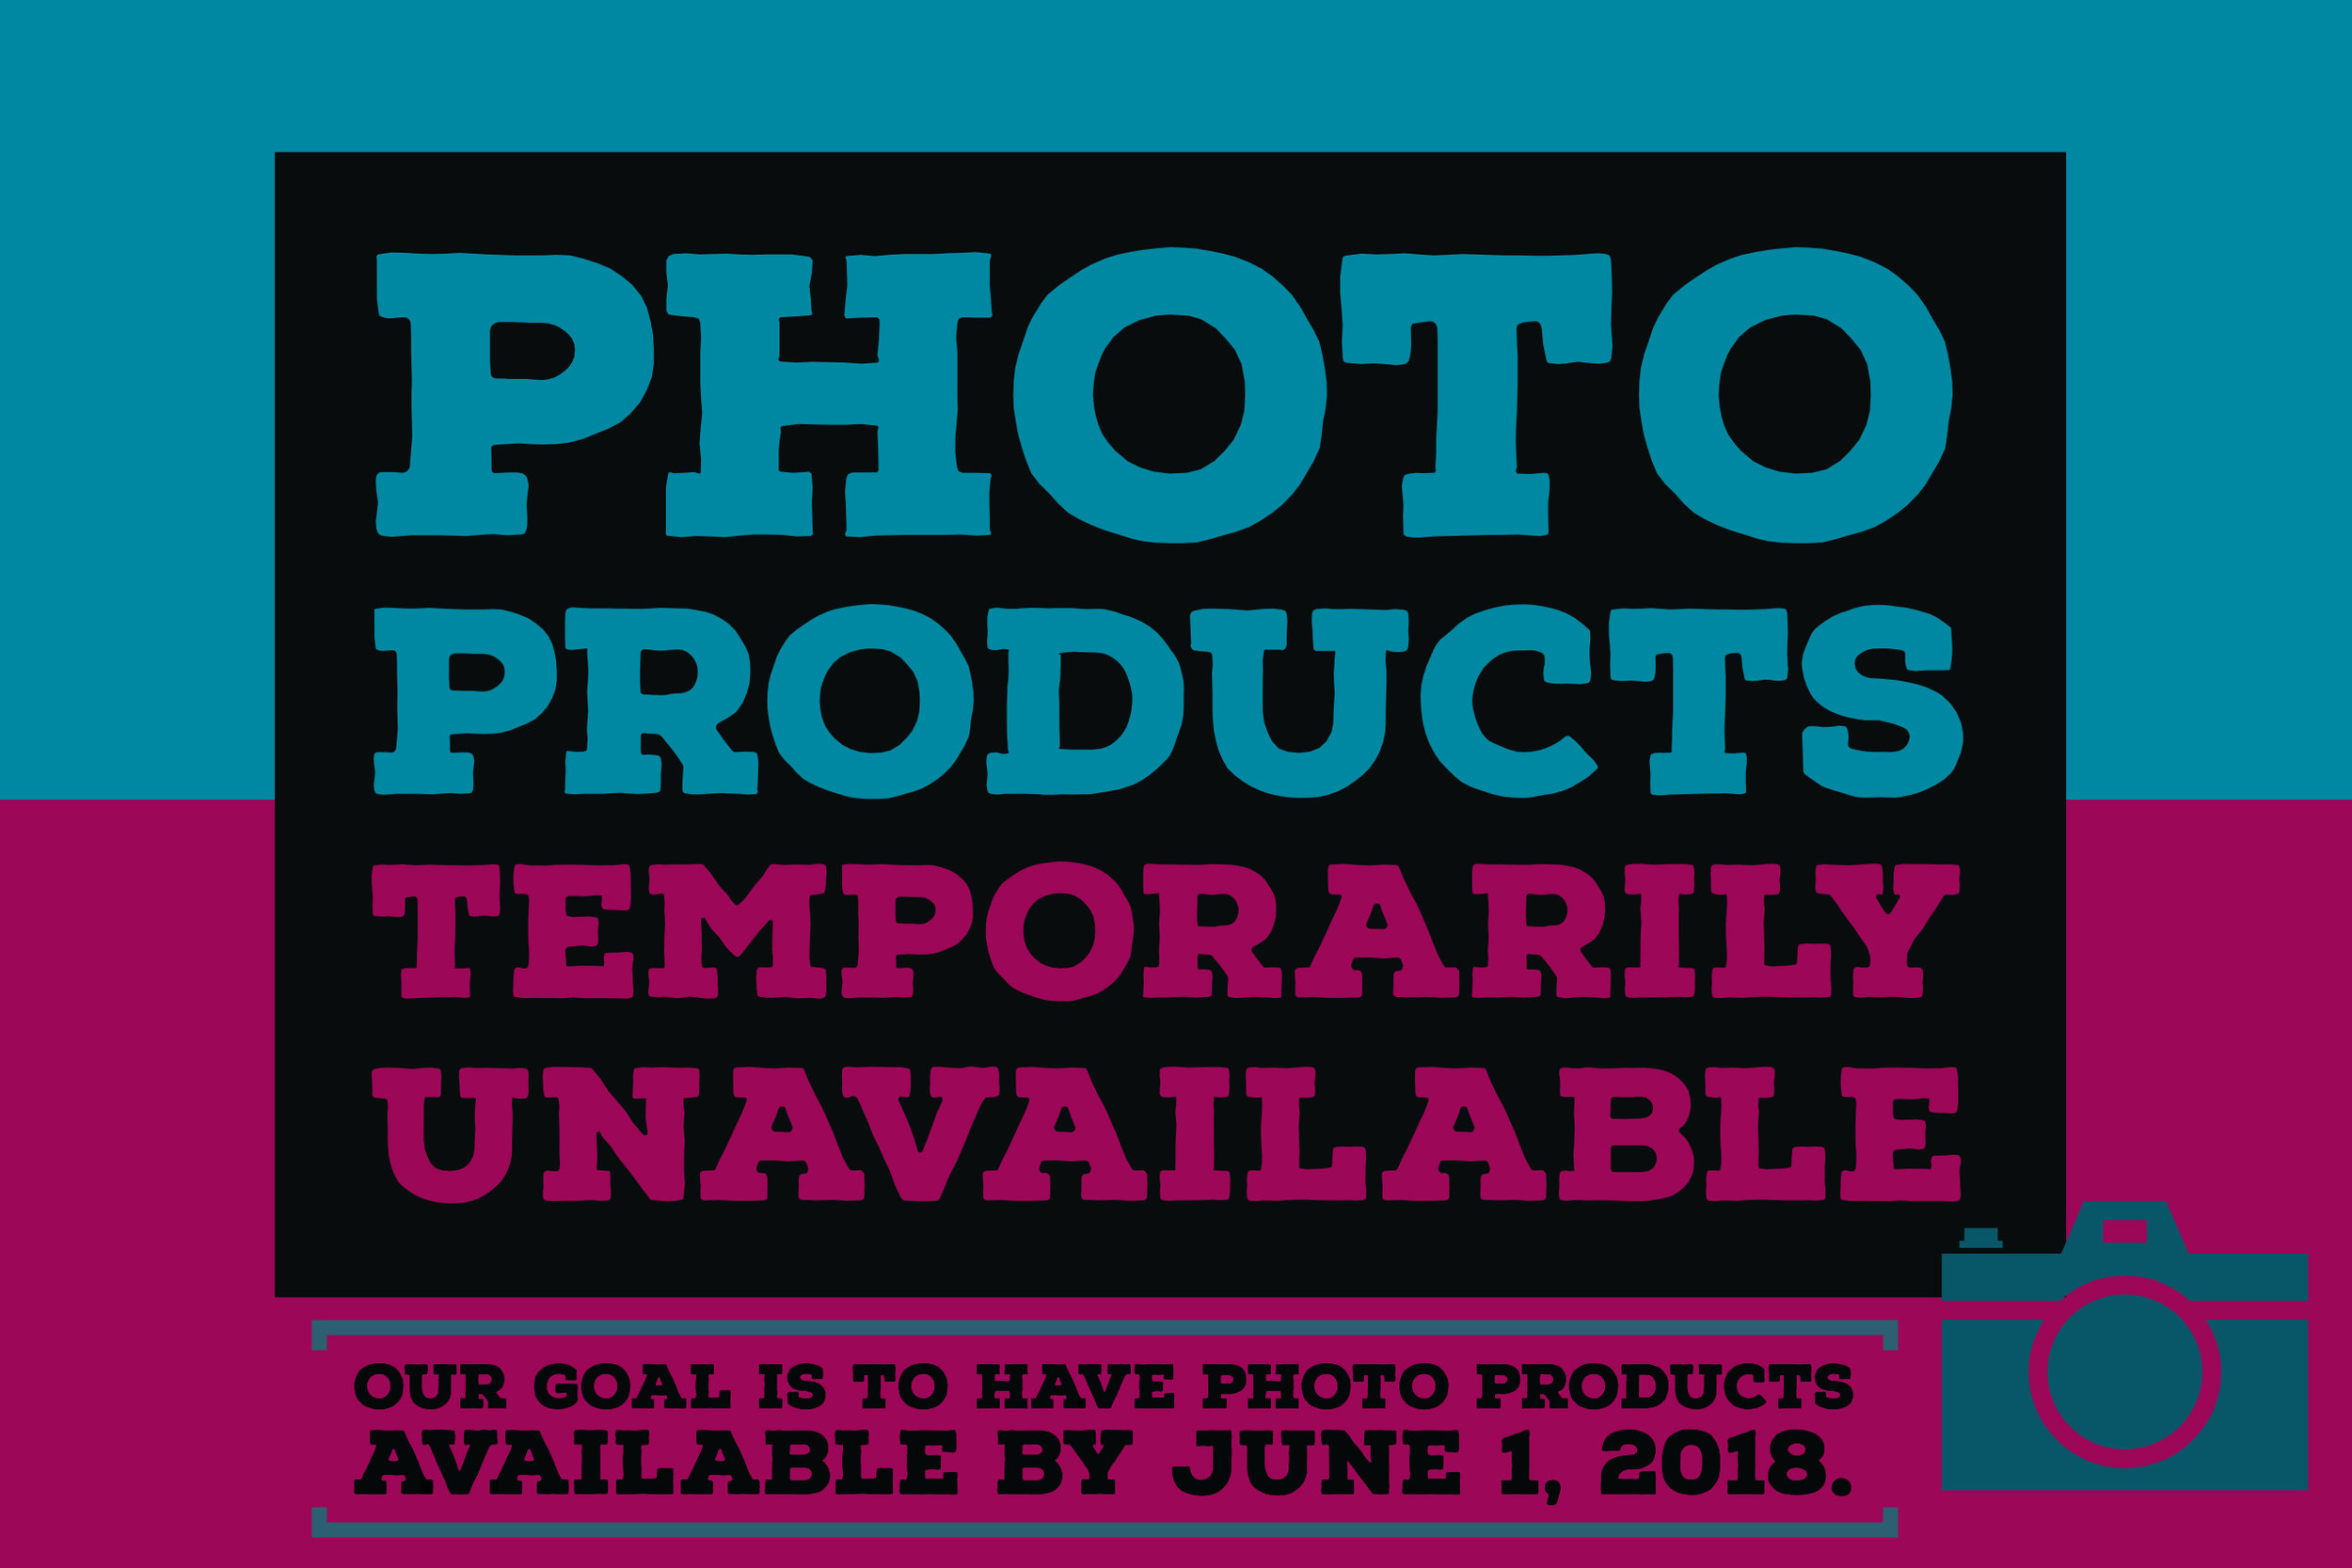 We have temporarily taken down the photo with our featured products and prices. We are currently only able to offer digital downloads, while we await our Iowa tax ID. Any sessions that take place during this digital stage will receive a 20% discount on photo products, once they return. All of our prints and products are supplied through high quality vendors that work exclusively with professional photographers.